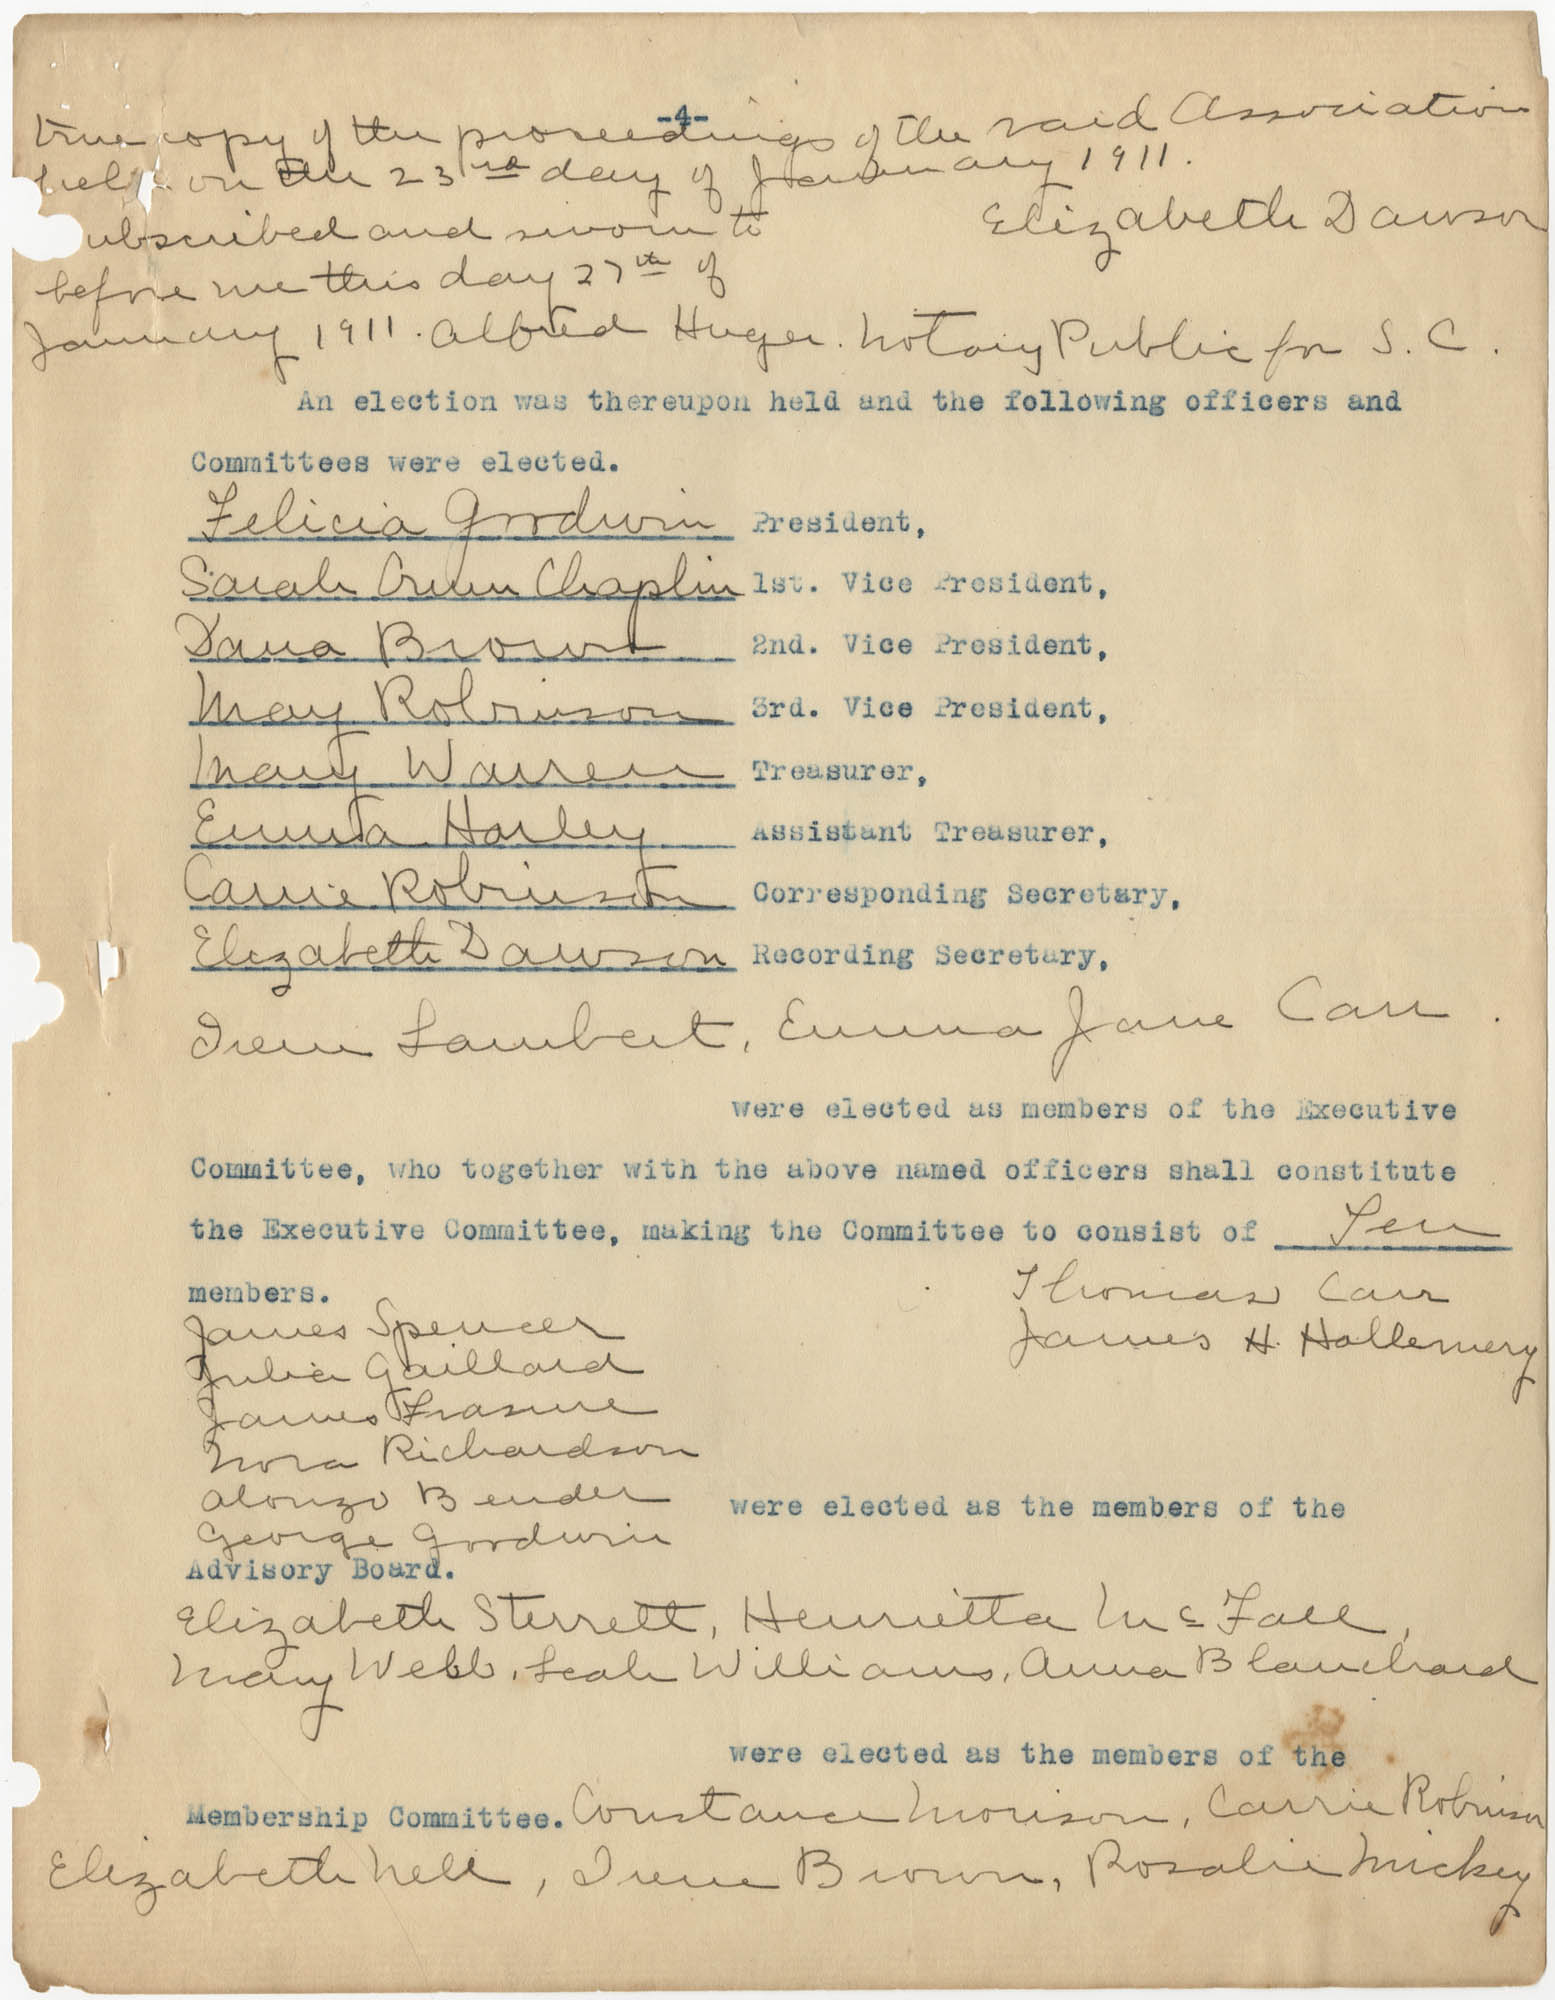 Minutes to the Coming Street Y.W.C.A. Meeting, January 23, 1911, Page 4